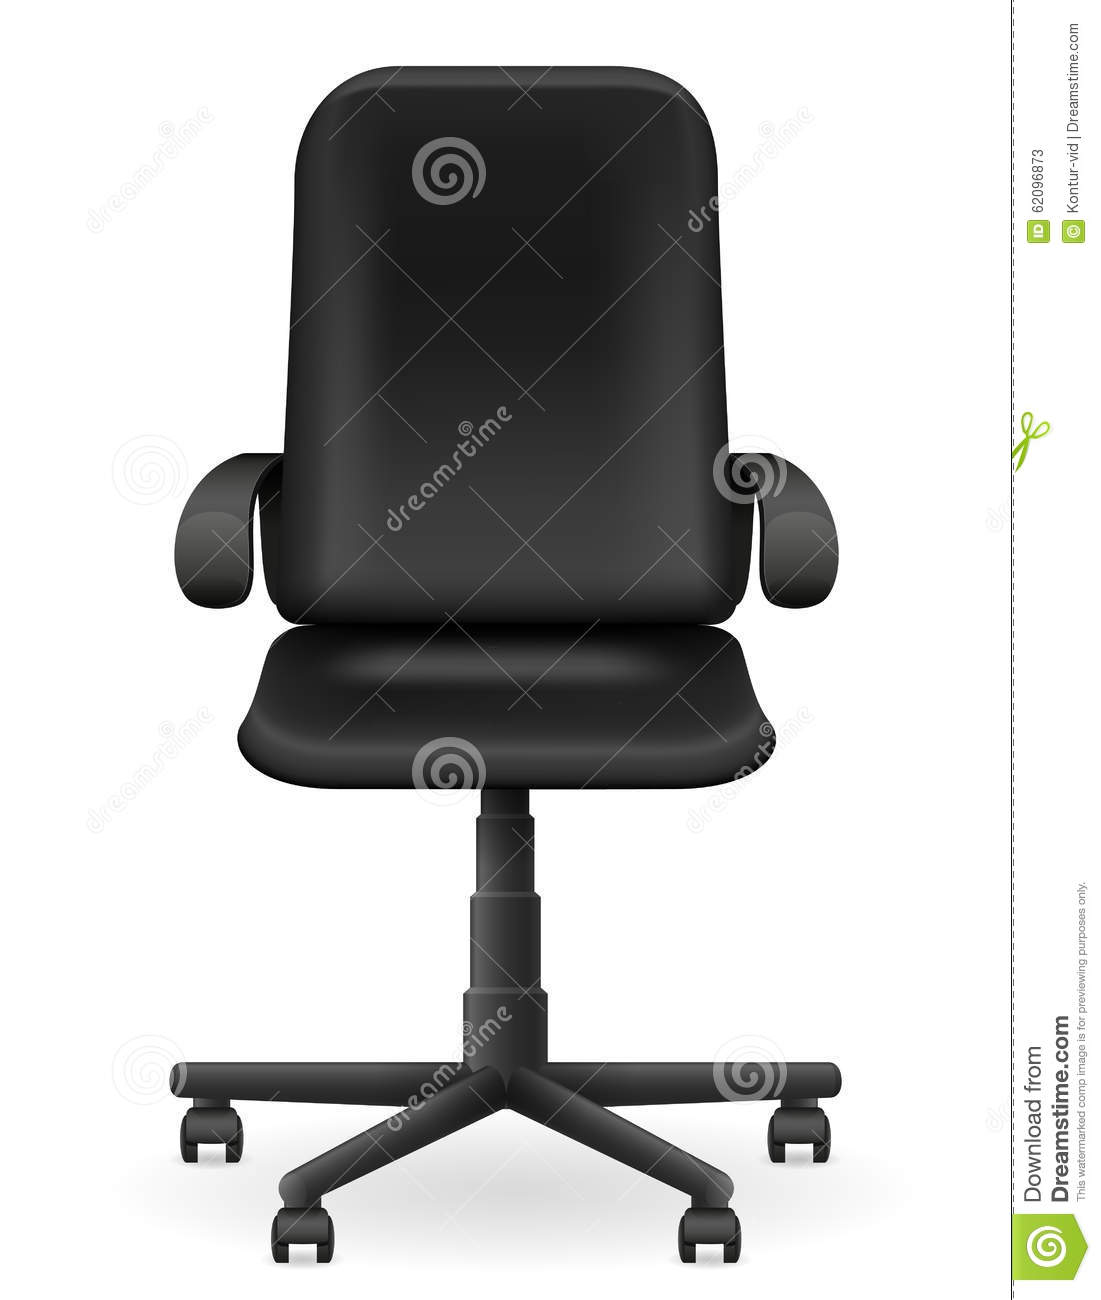 office chair illustration navy blue metal dining chairs black armchair furniture vector stock